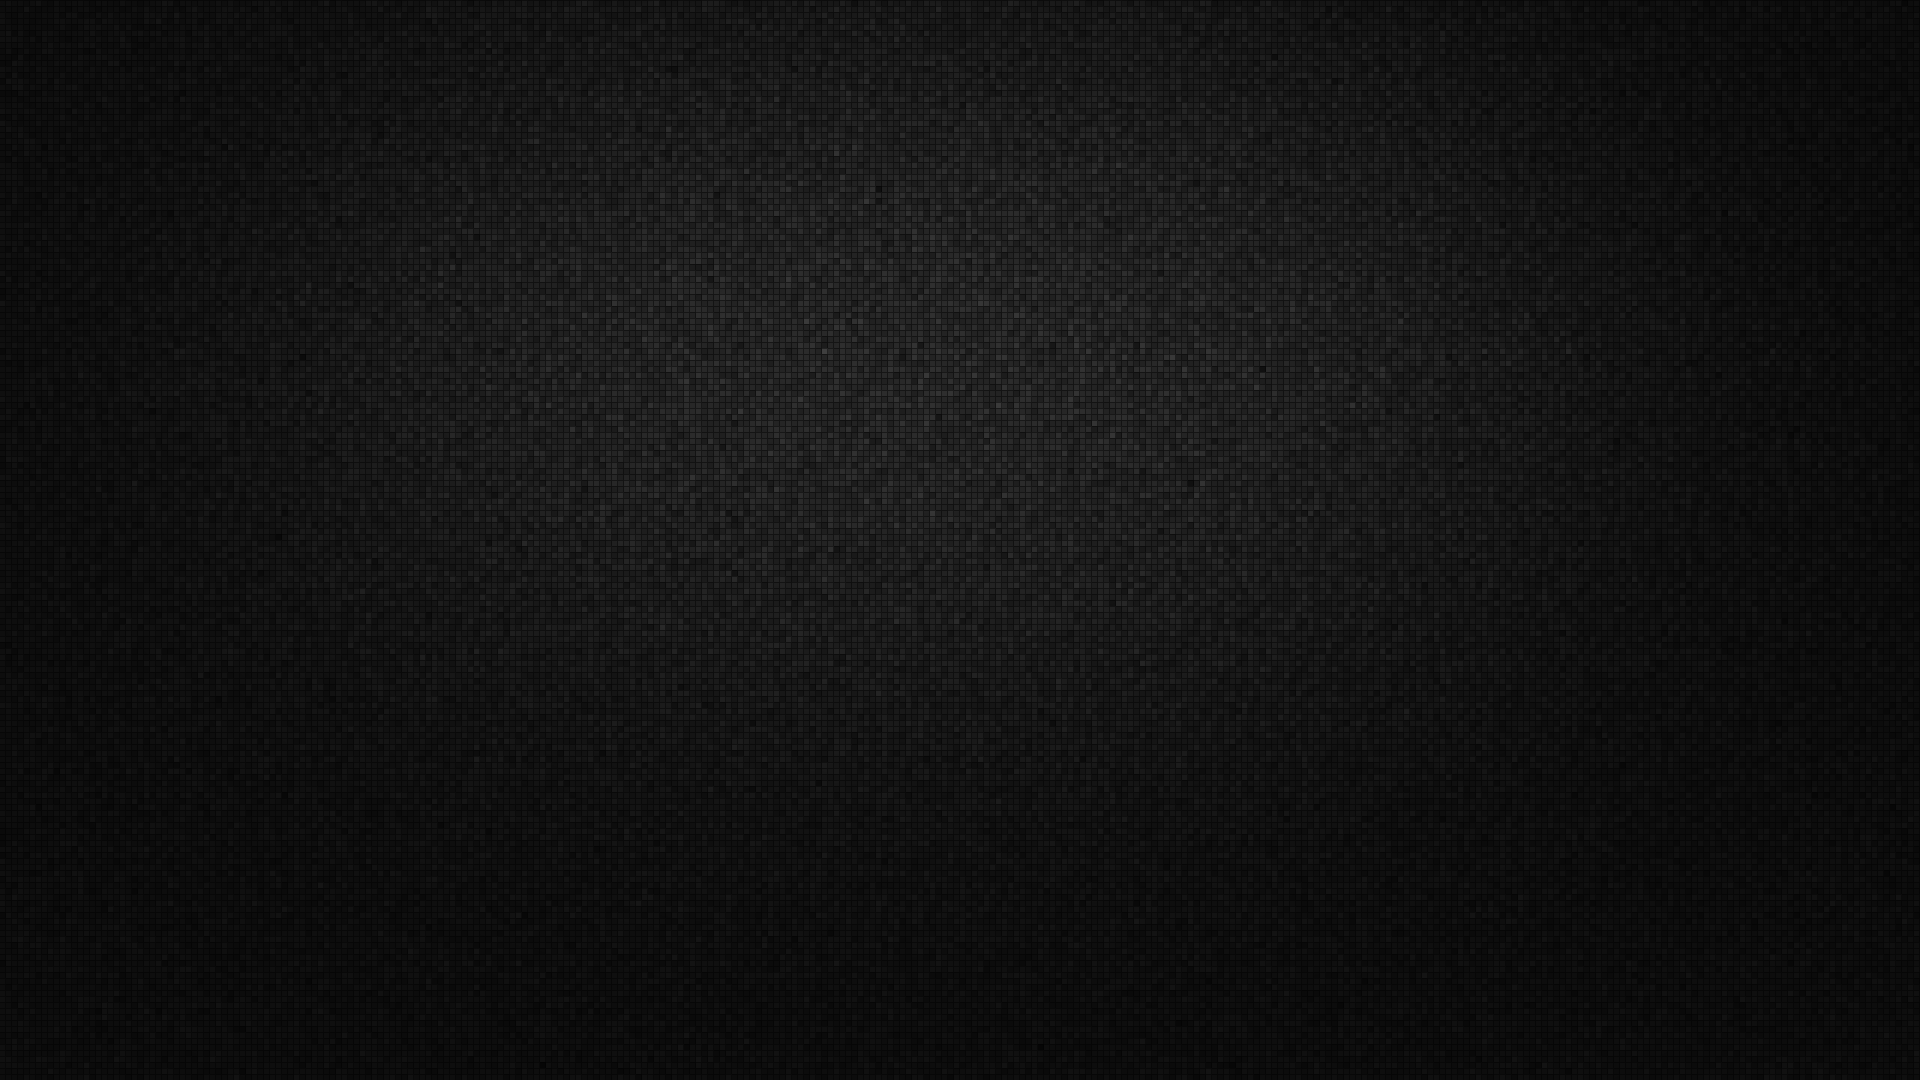 dark backgrounds 1920x1080 aero - photo #35